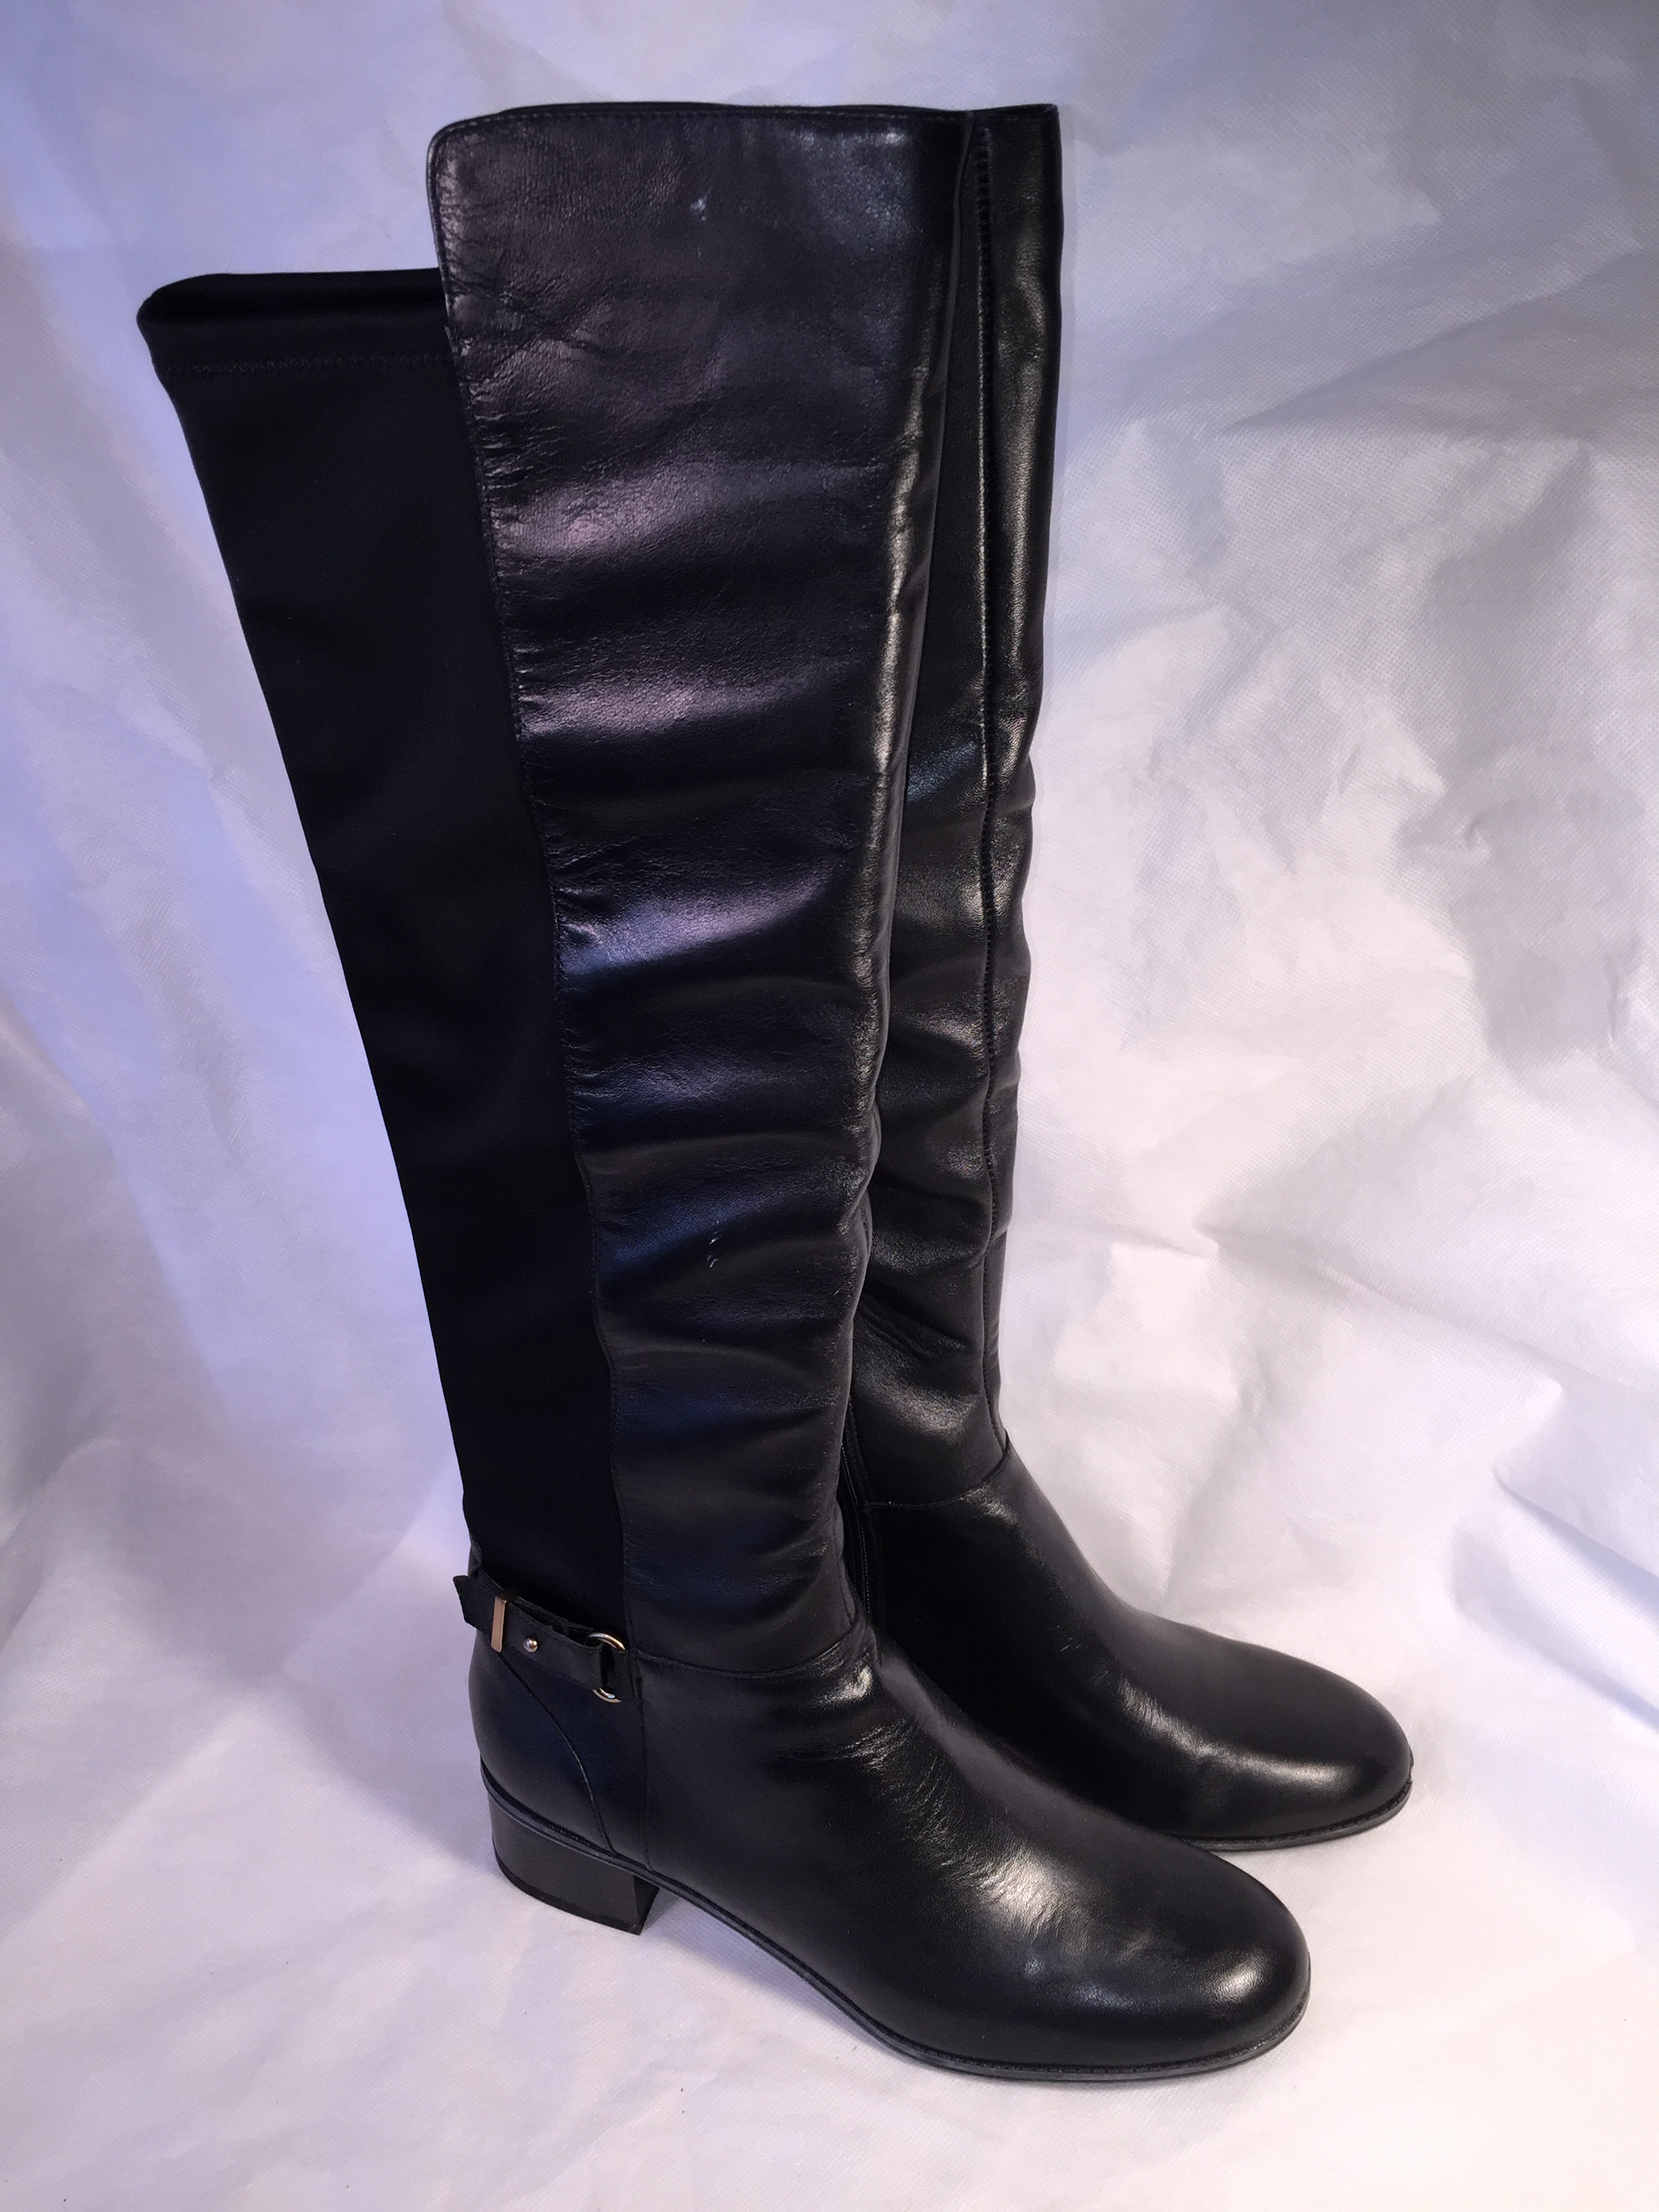 Over The Knee Boots Size 11 ijle00lg